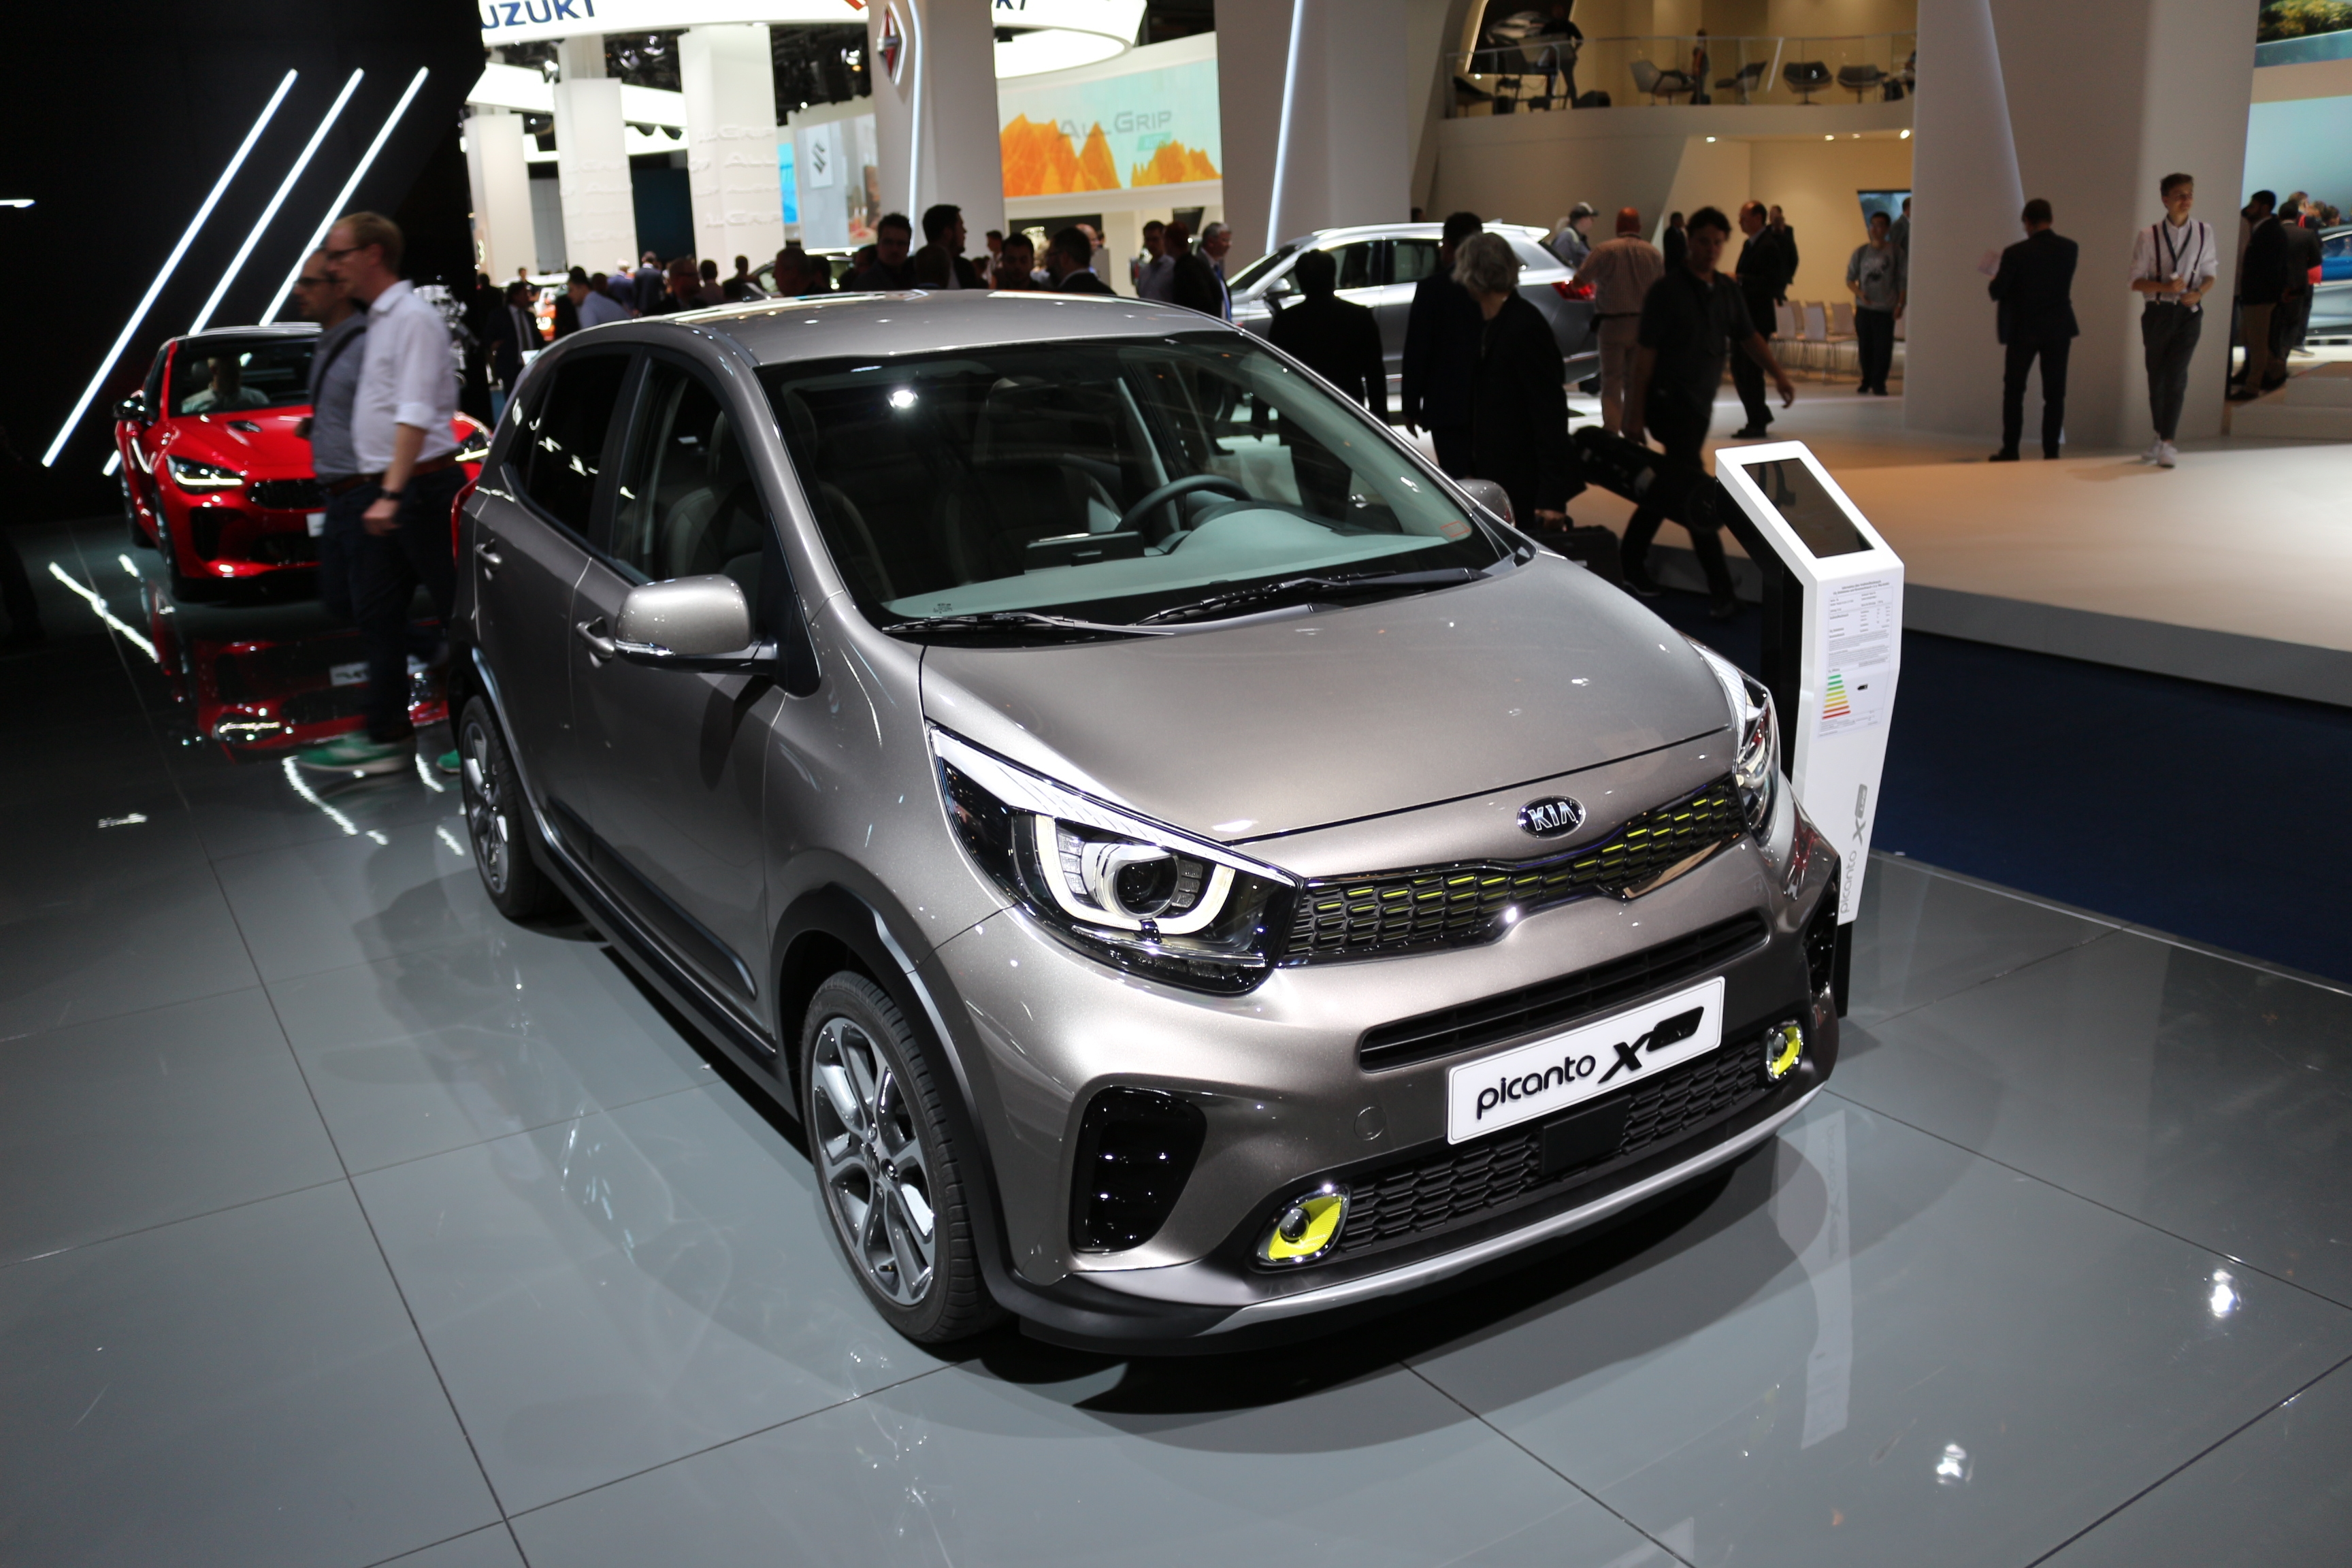 kia picanto x line style suv vid o en direct du salon de francfort. Black Bedroom Furniture Sets. Home Design Ideas